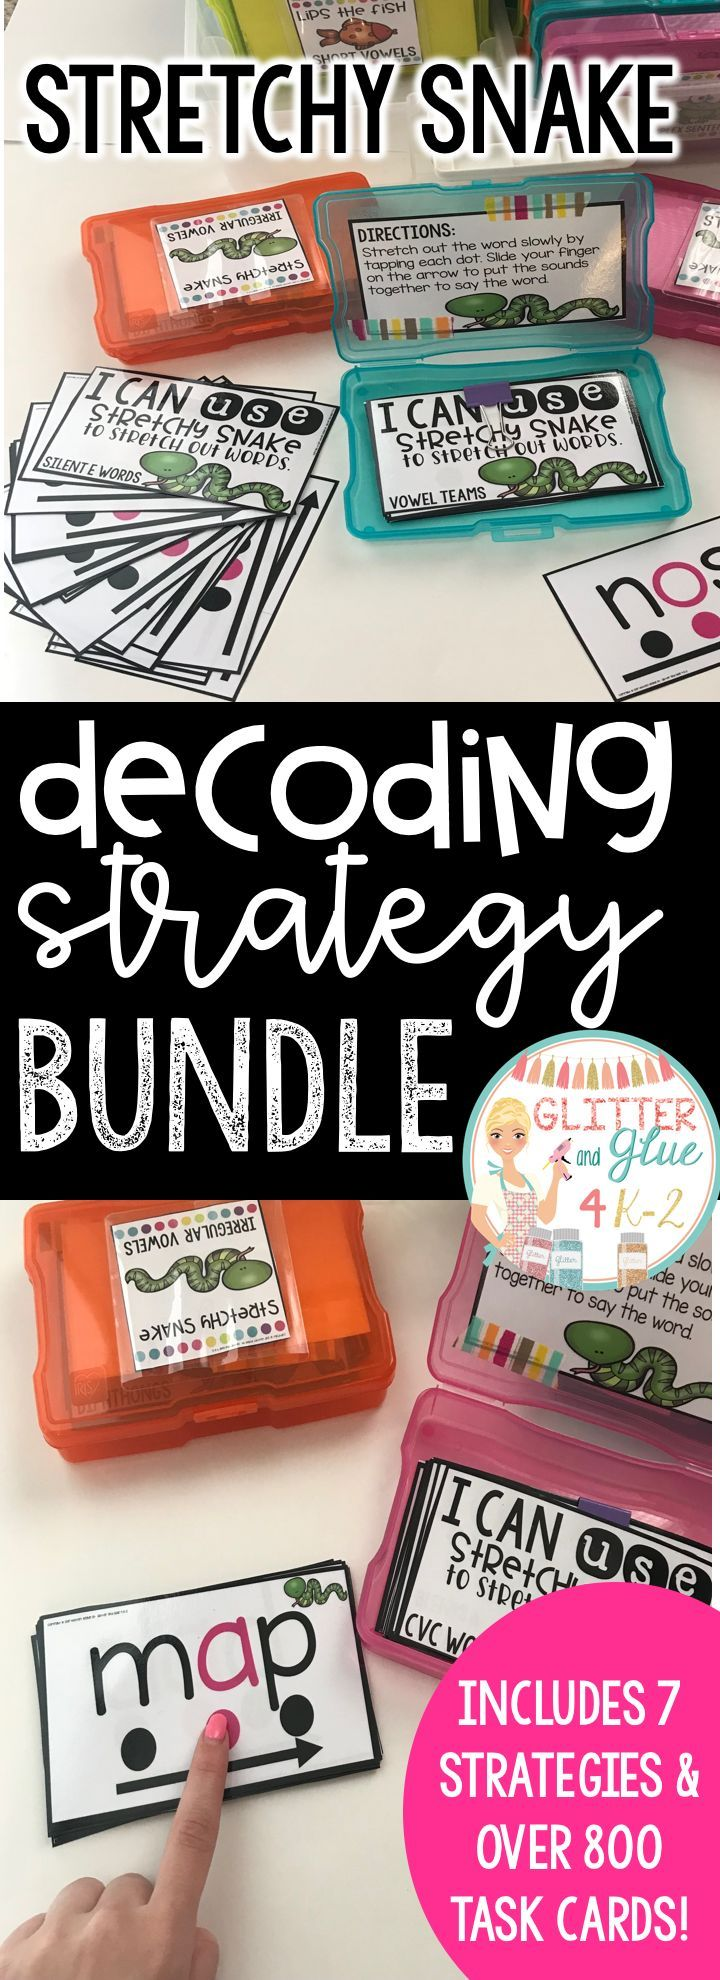 This decoding strategy bundle is a great way to start off your guided reading time or you can use the cards as an extra intervention! Strategies included are: stretchy snake, lips the fish, tryin' lion, eagle eye, skippy frog, chunky monkey, and flippy dolphin. Keywords: decoding, guided reading, kindergarten, first grade, special education, sped teacher, reading, decode, RTI, word work, task boxes, reading instruction, phonics, reading intervention, task cards